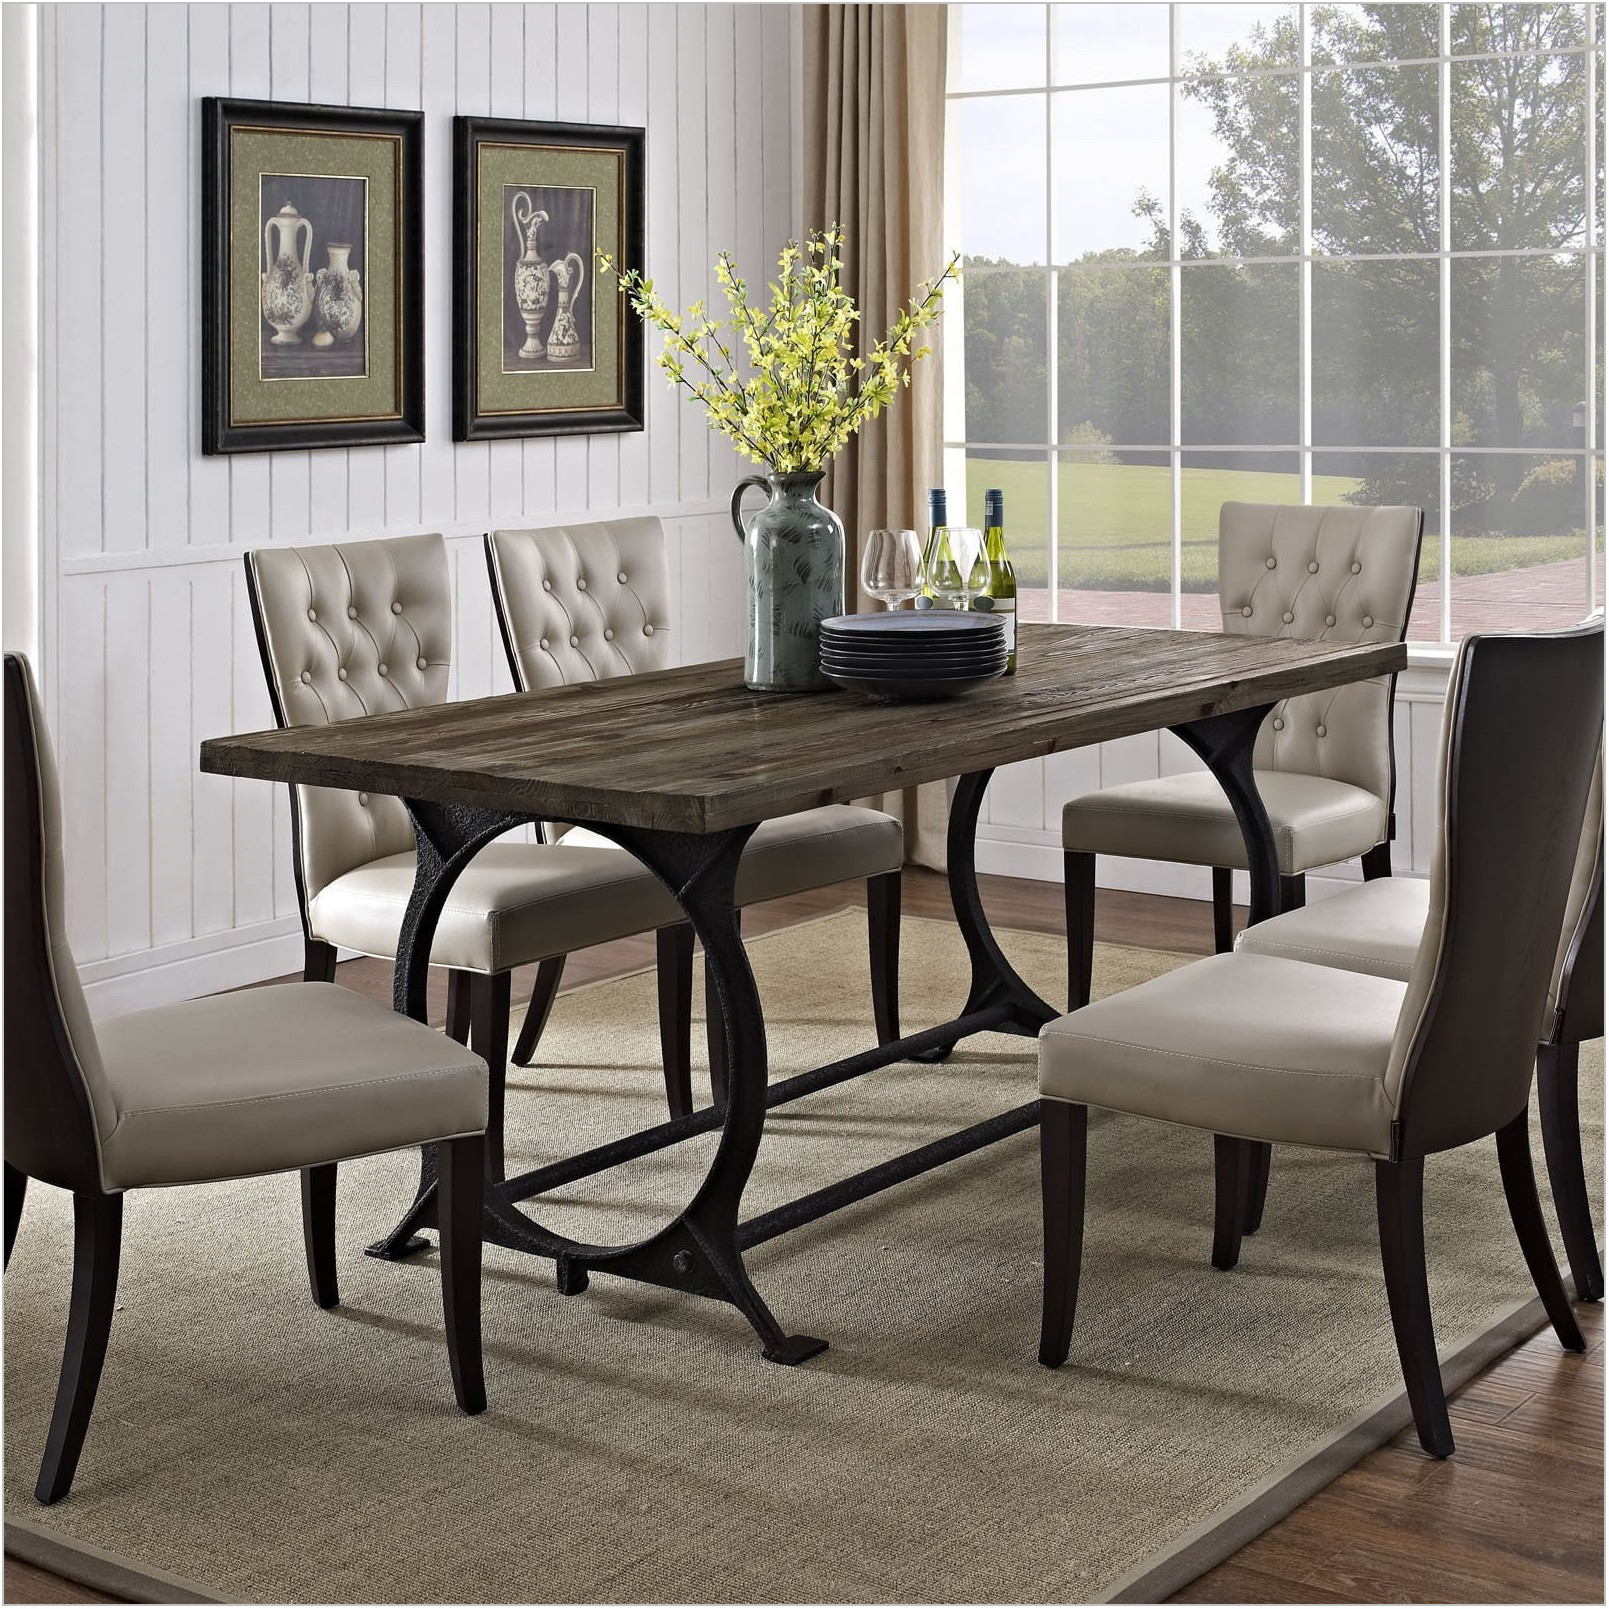 Dining Room Tables Louisville Ky